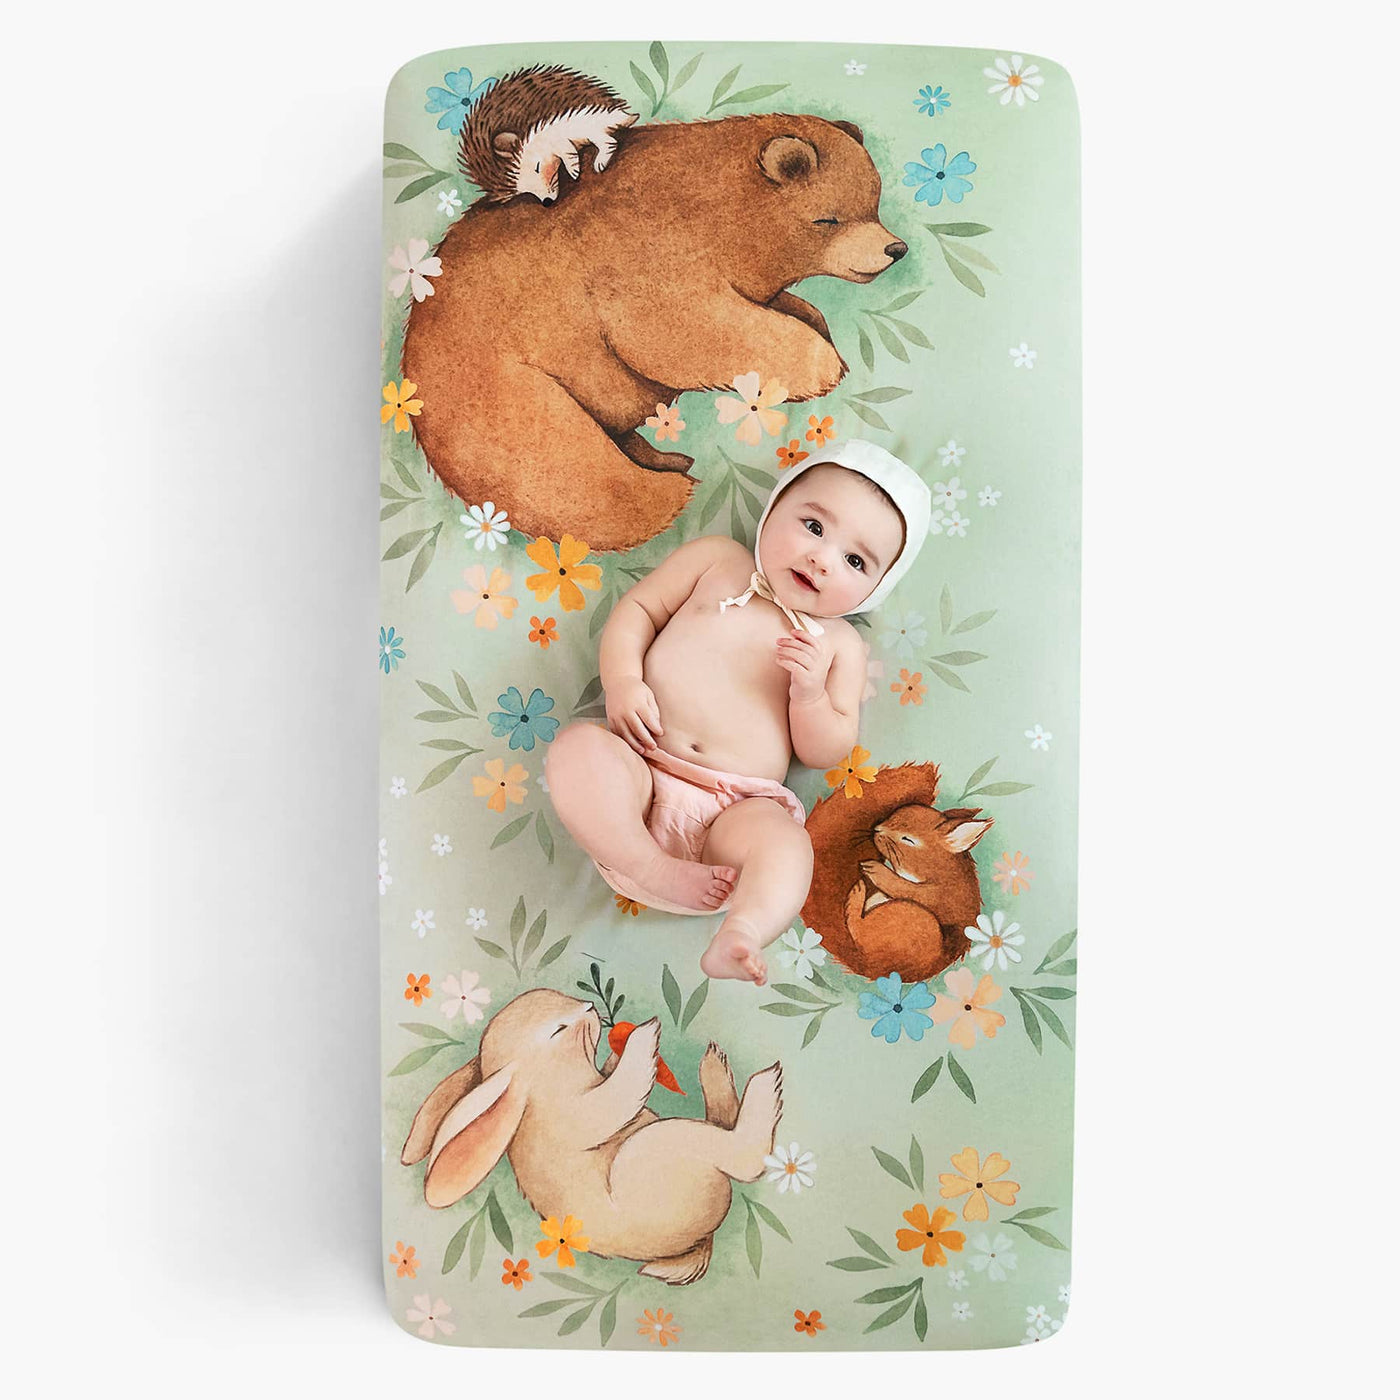 Rookie Humans Enchanted Meadow Crib Sheet - Alex + Nova